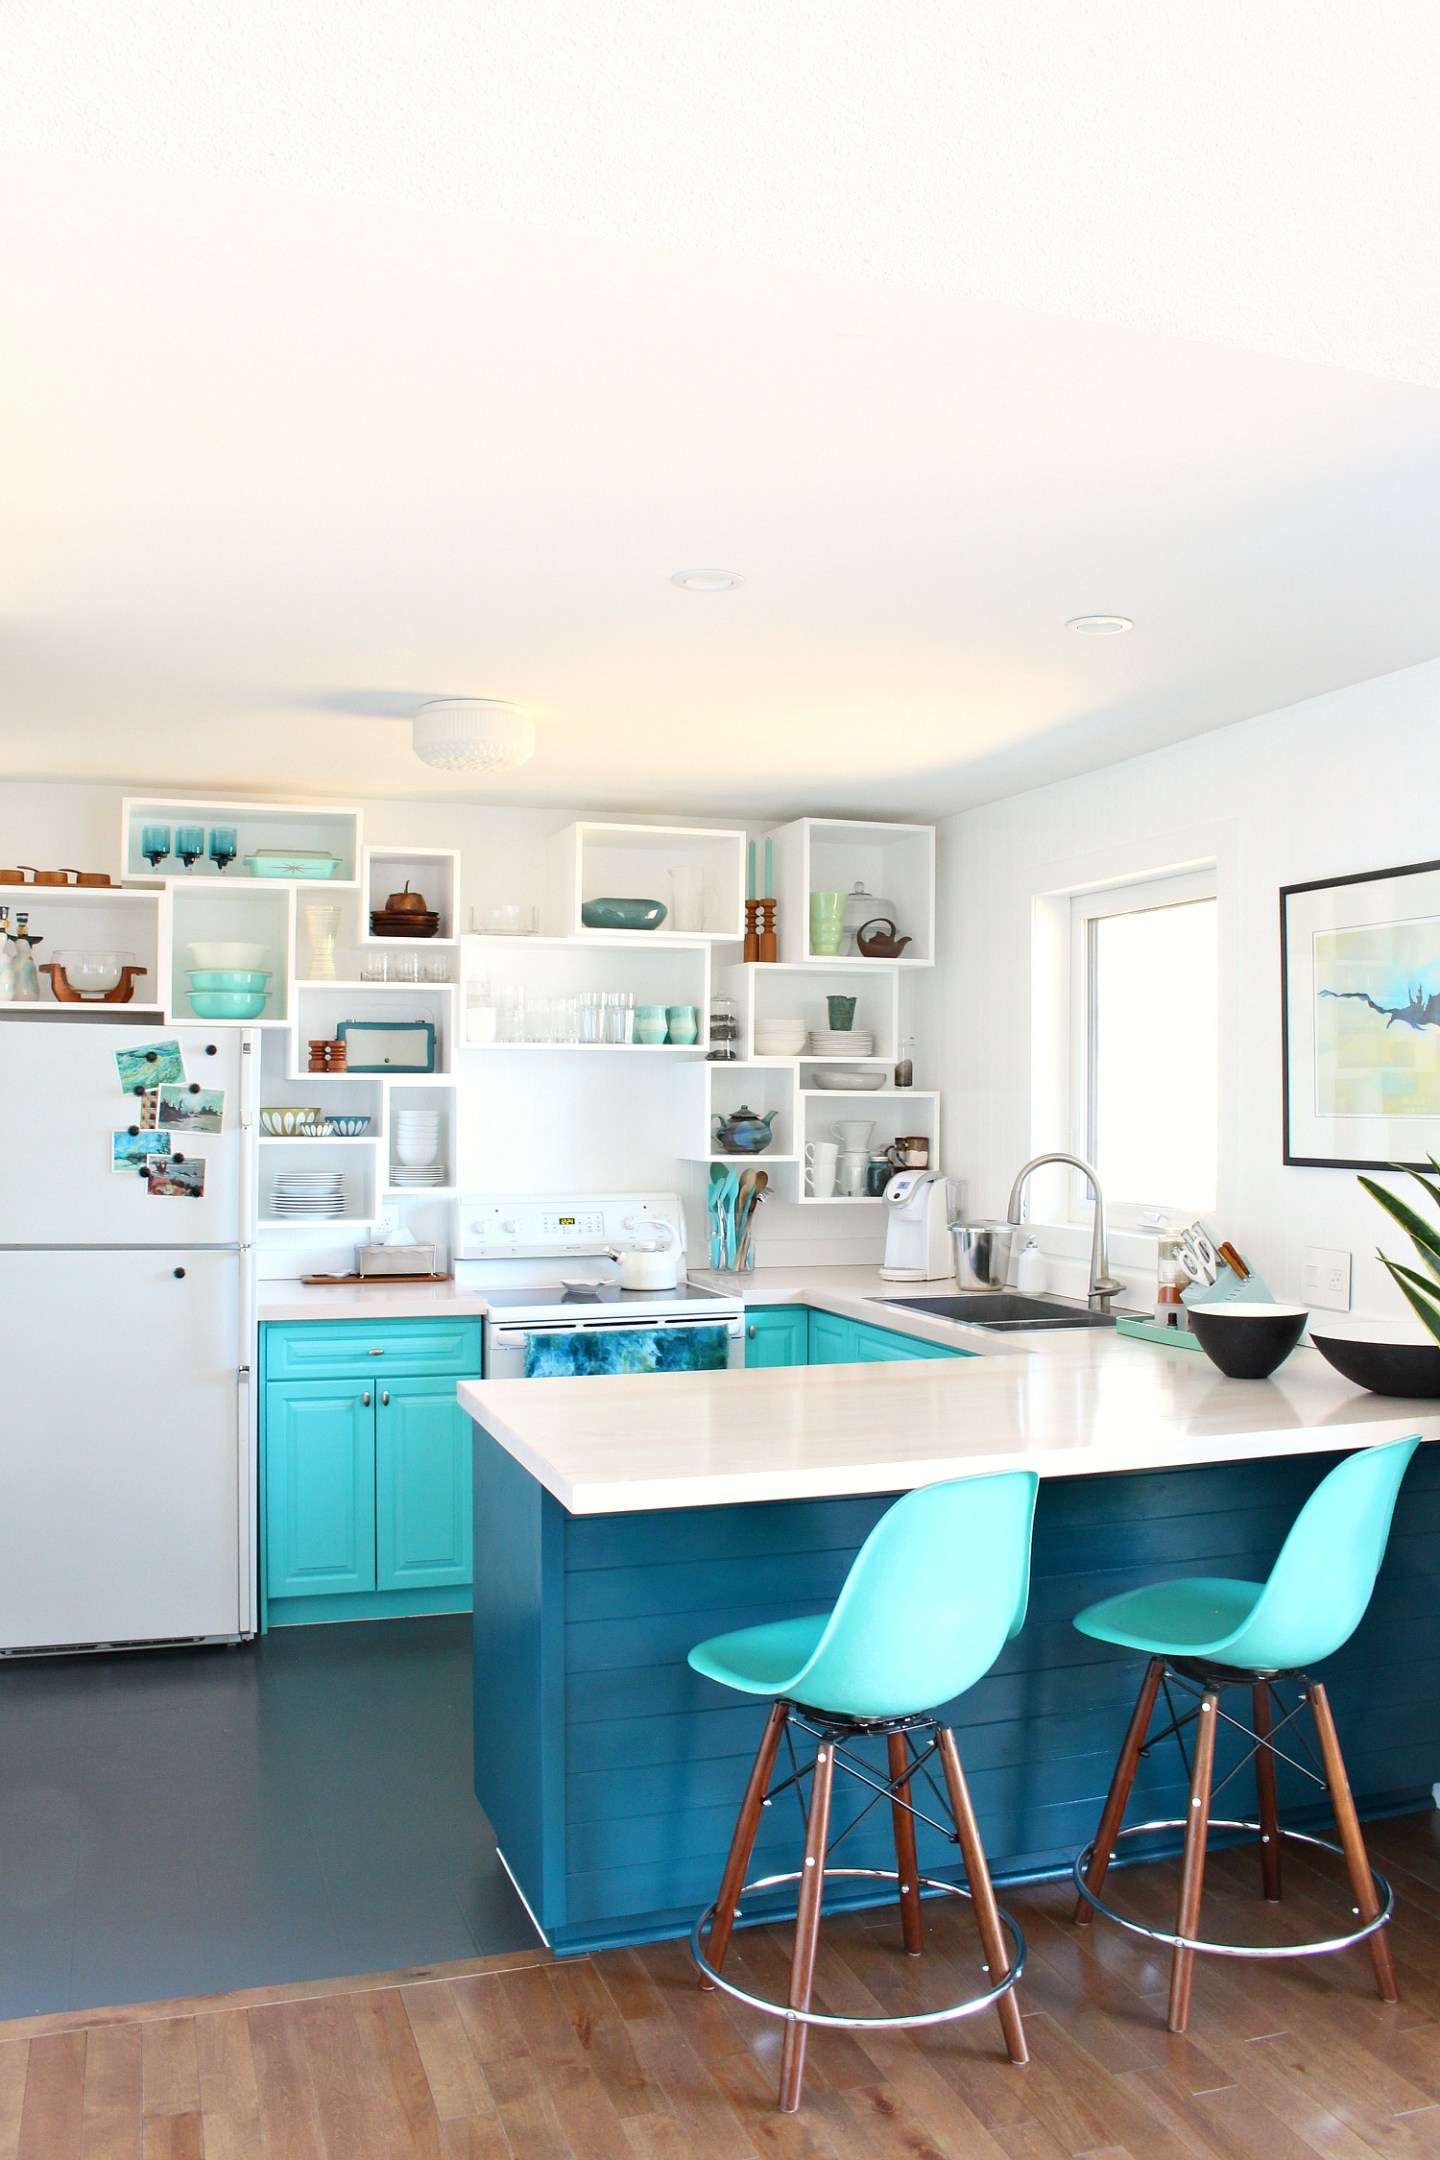 How to Build Wall Cubbies   Fresh Take on Kitchen Open Shelving. Unique and Fun DIY Kitchen Design Idea. Wall Cubbies Idea with Wall Cubbies DIY Tutorials. Kitchen Open Shelving Ideas for Small Spaces and Kitchen Organization. #kitchenshelving #kitchenstorage #uniquekitchen